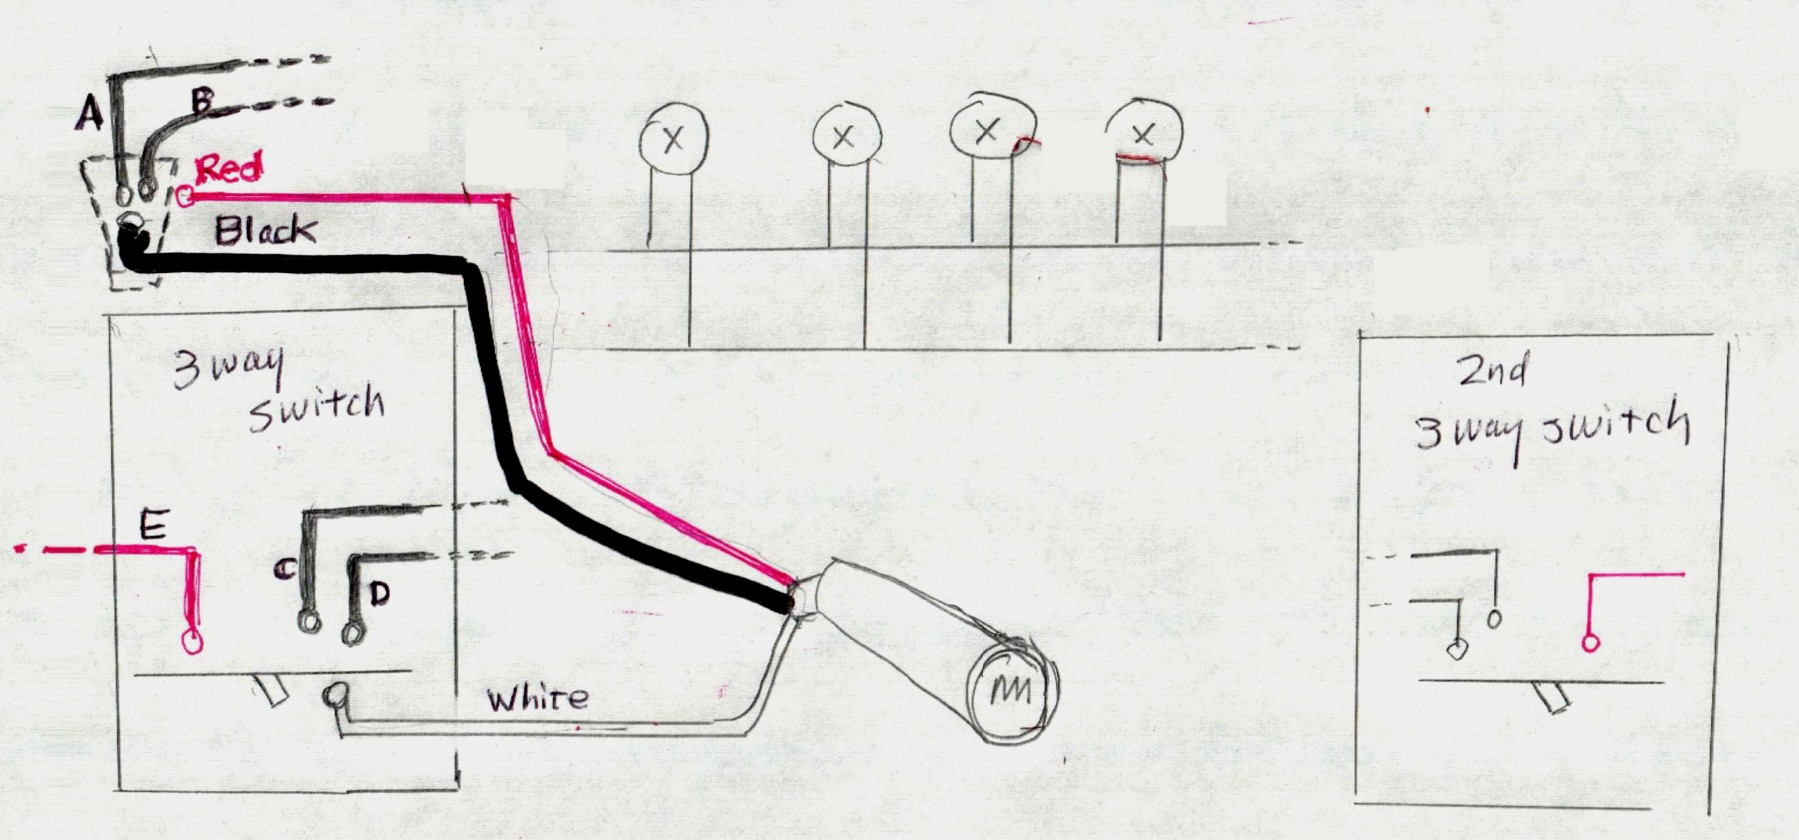 Time Clock Photocell Wiring Diagram - All Wiring Diagram - Photocell Wiring Diagram